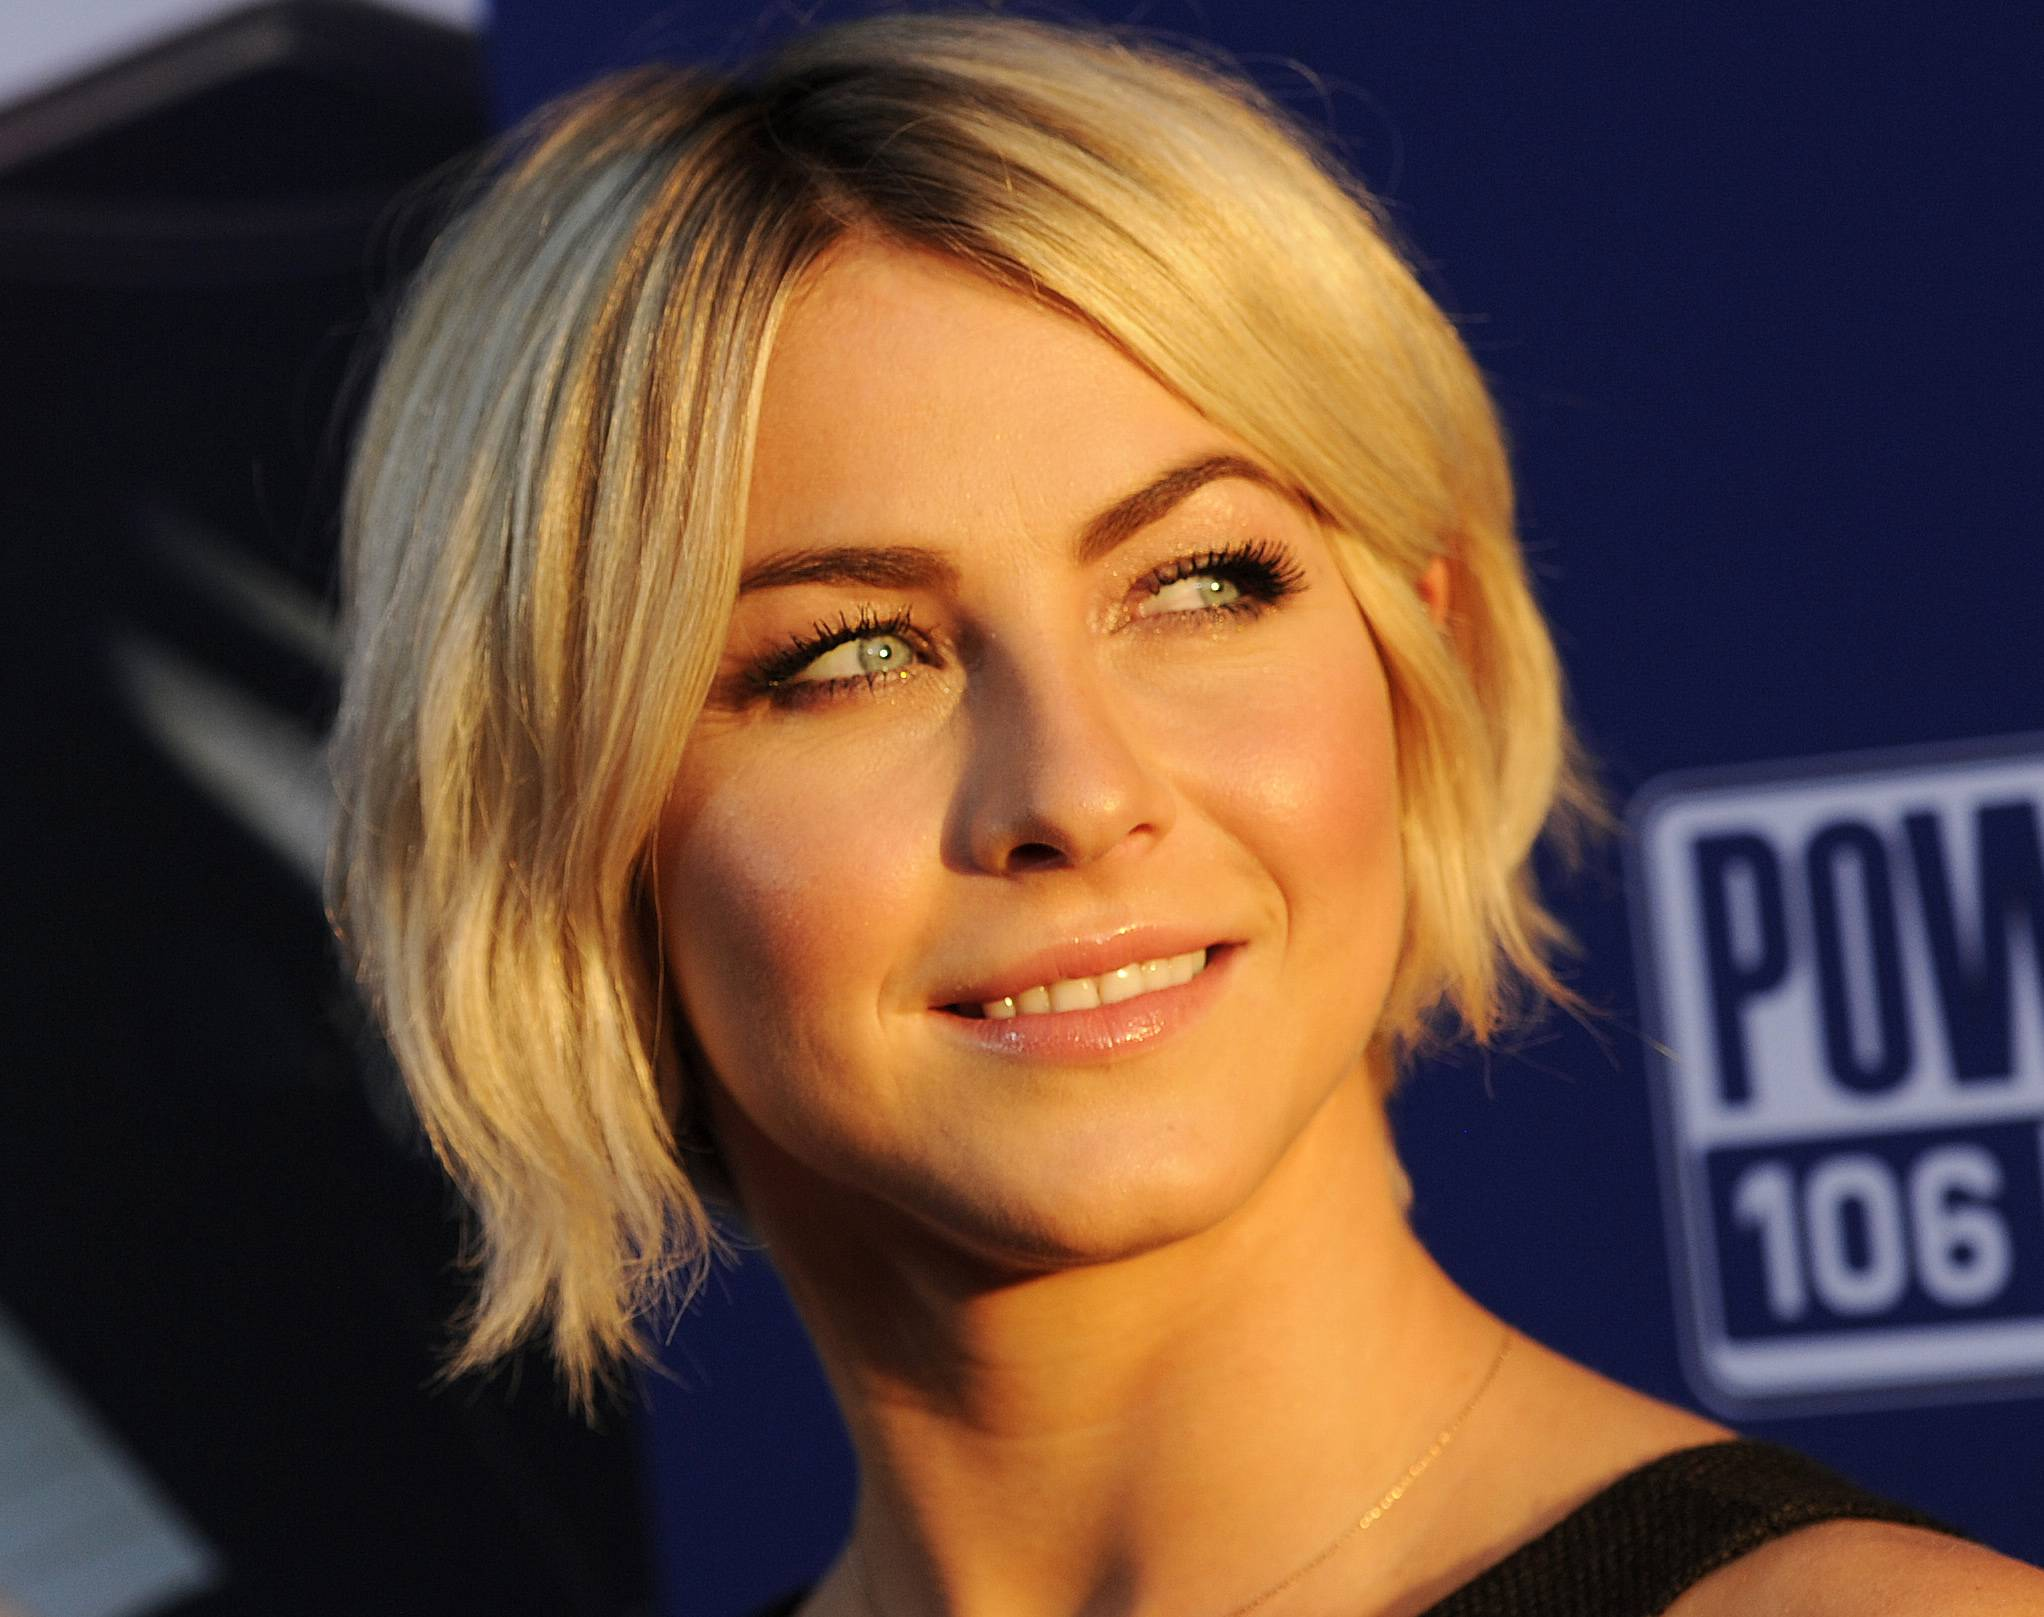 """Dancing With the Stars"" says two-time champion Julianne Hough is returning to the ballroom as a judge this season. She will preside alongside Len Goodman, Carrie Ann Inaba and Bruno Tonioli. The new season launches Sept. 15 on ABC."